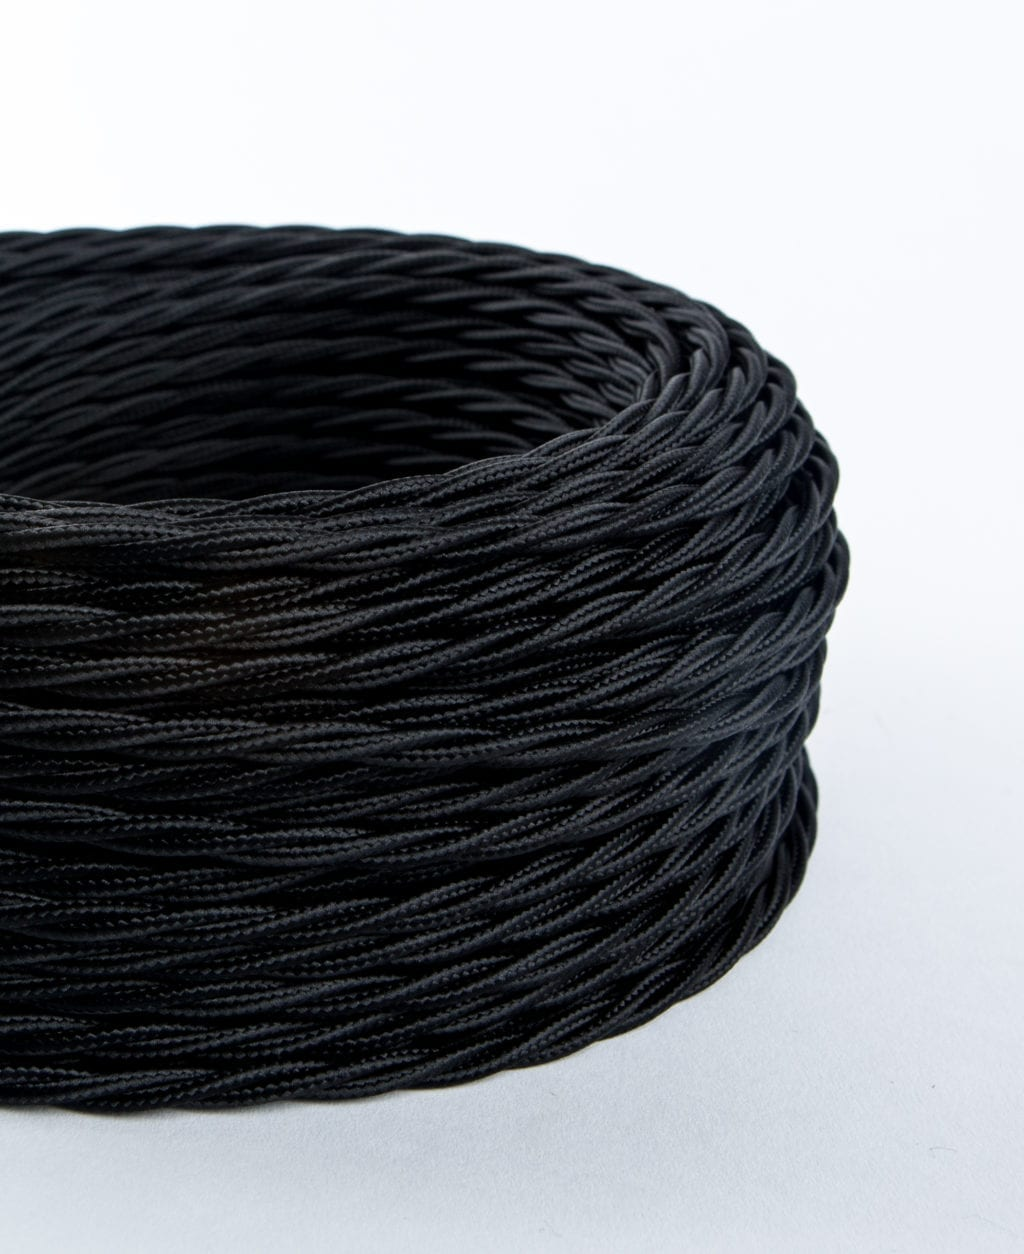 closeup of black twisted fabric cable coil on white background